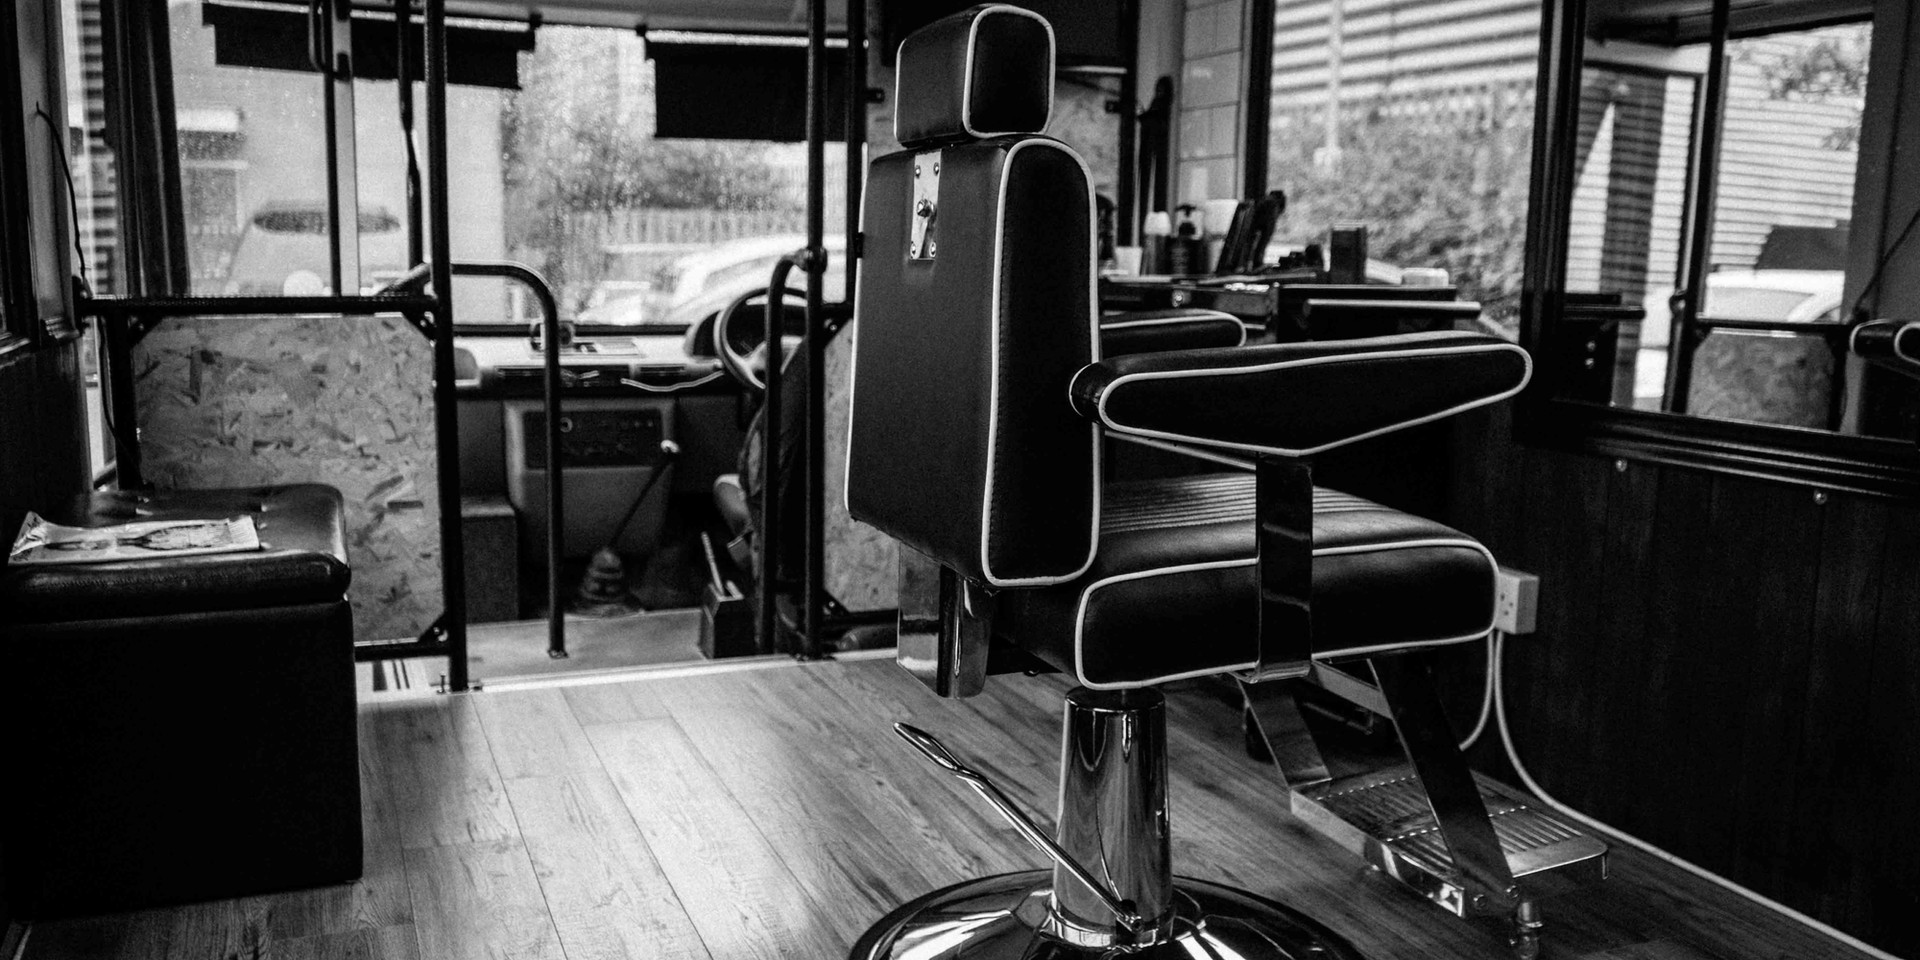 Brass Knuckle Barber co chair seating inside